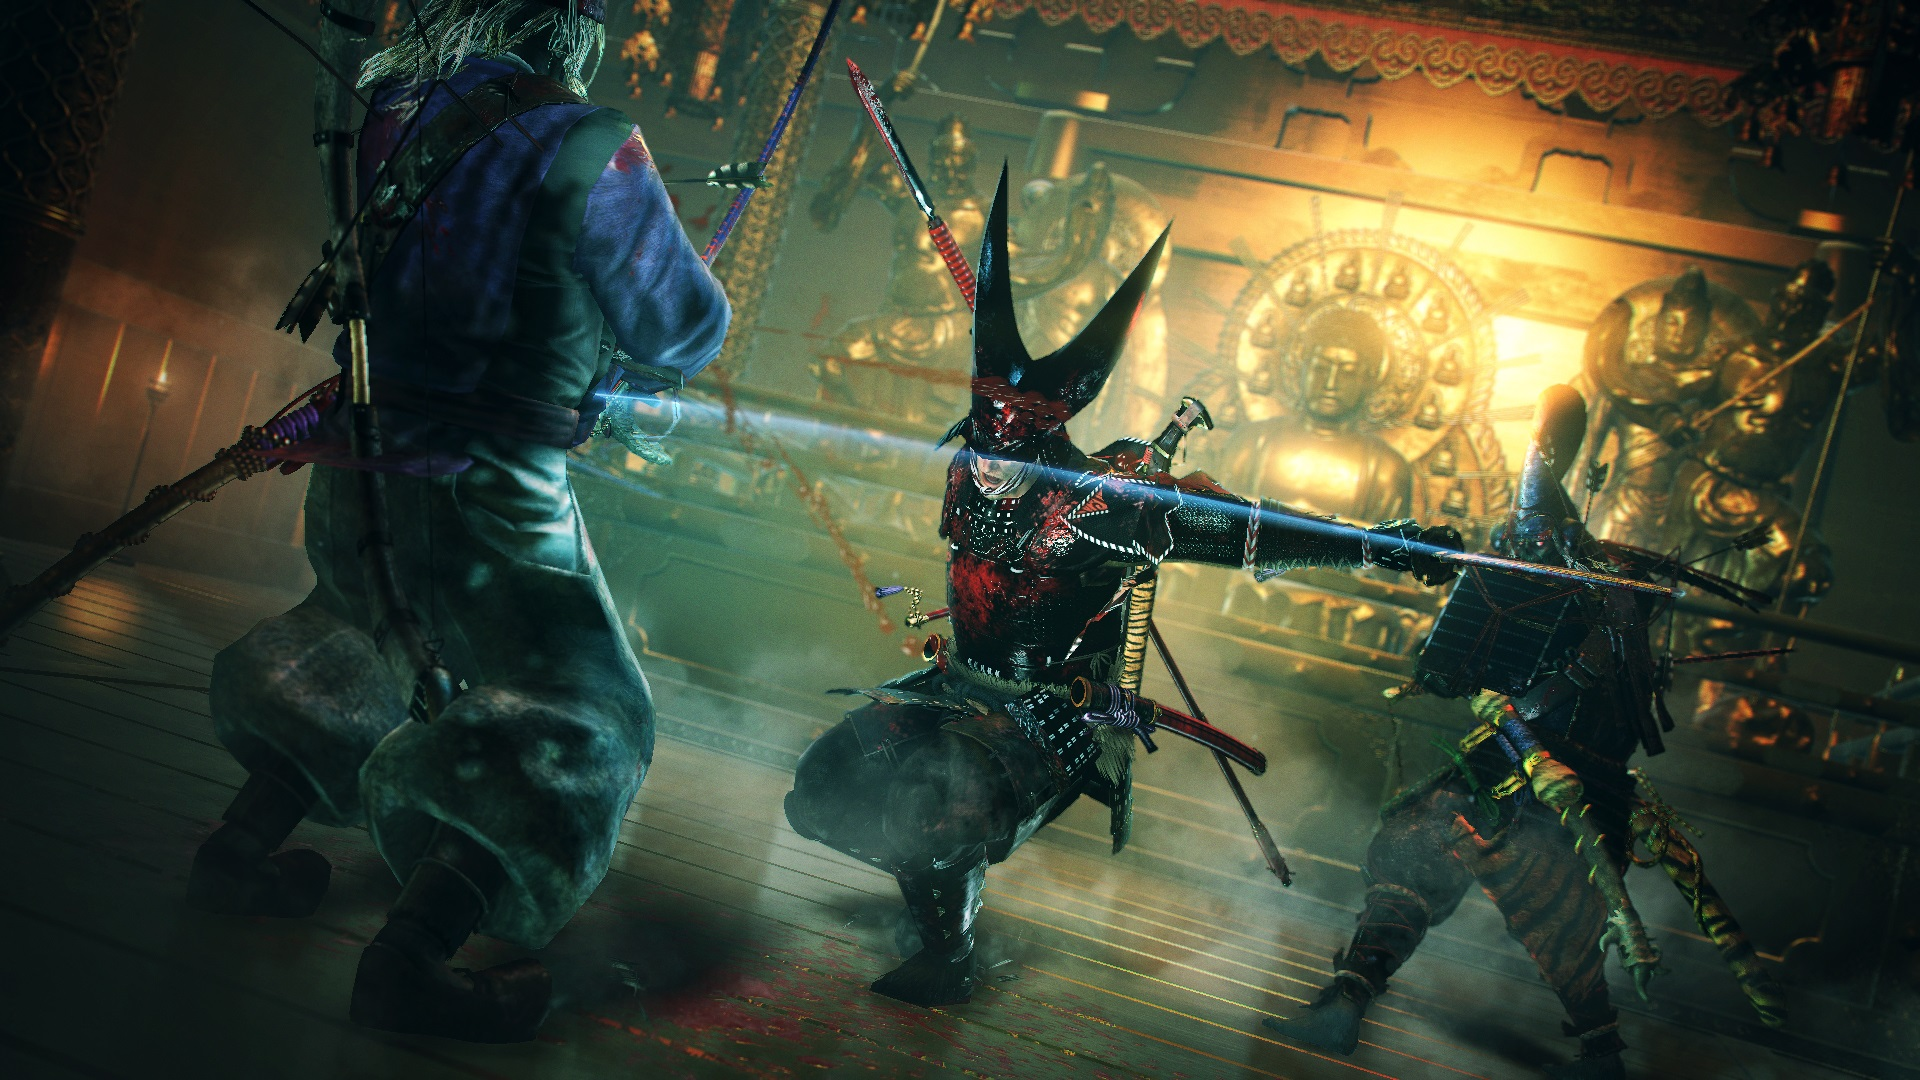 nioh_dragon_of_the_north_screen_3